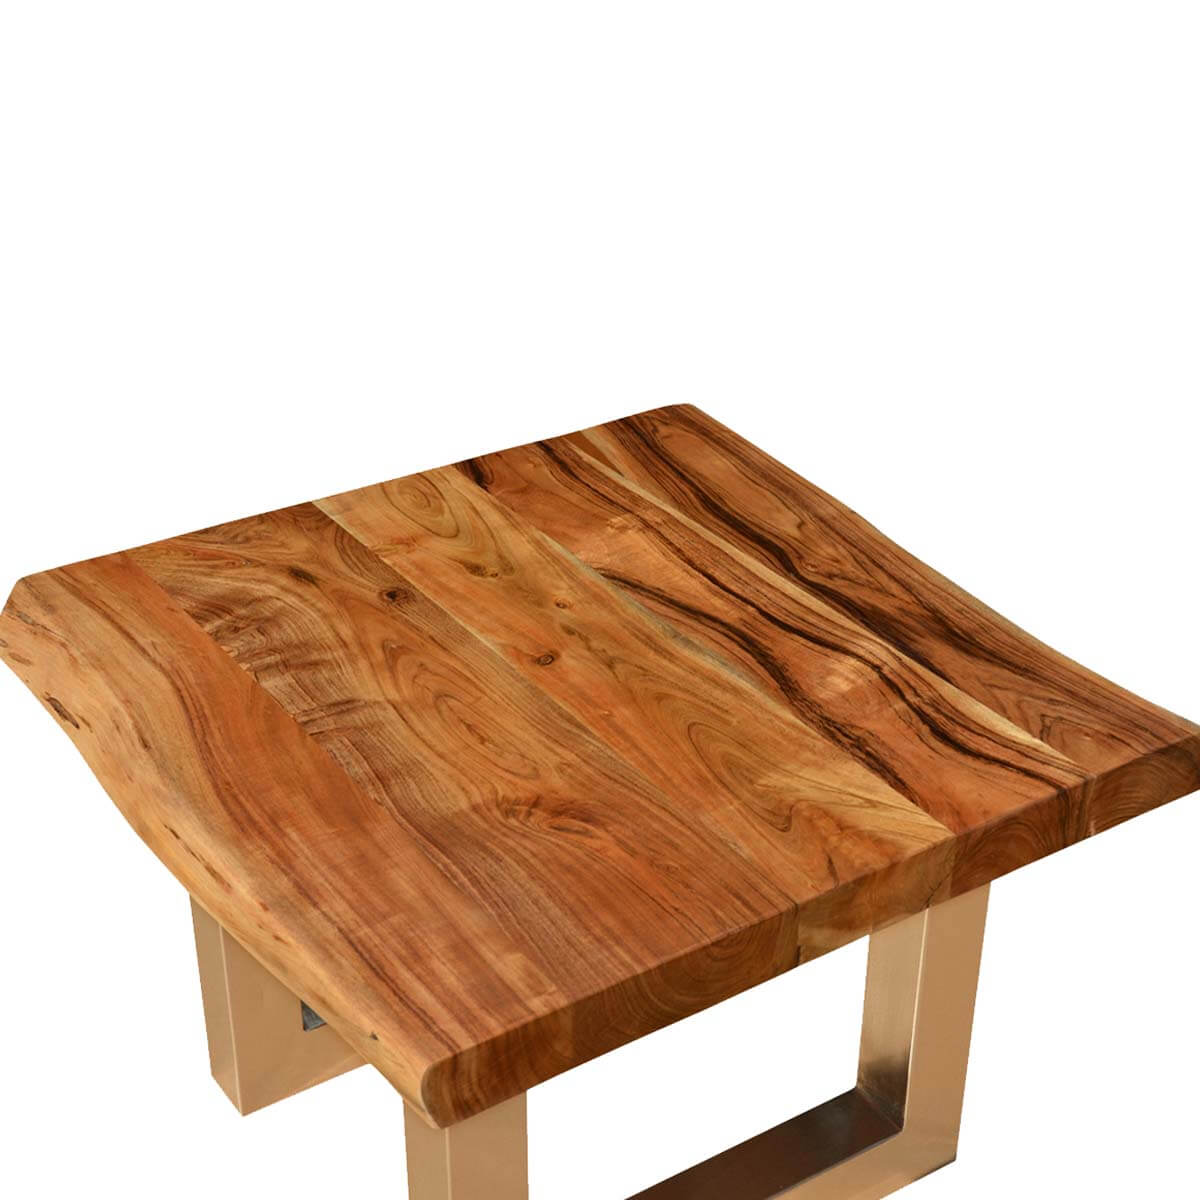 Live edge acacia wood iron contemporary square coffee table for Modern wooden coffee tables